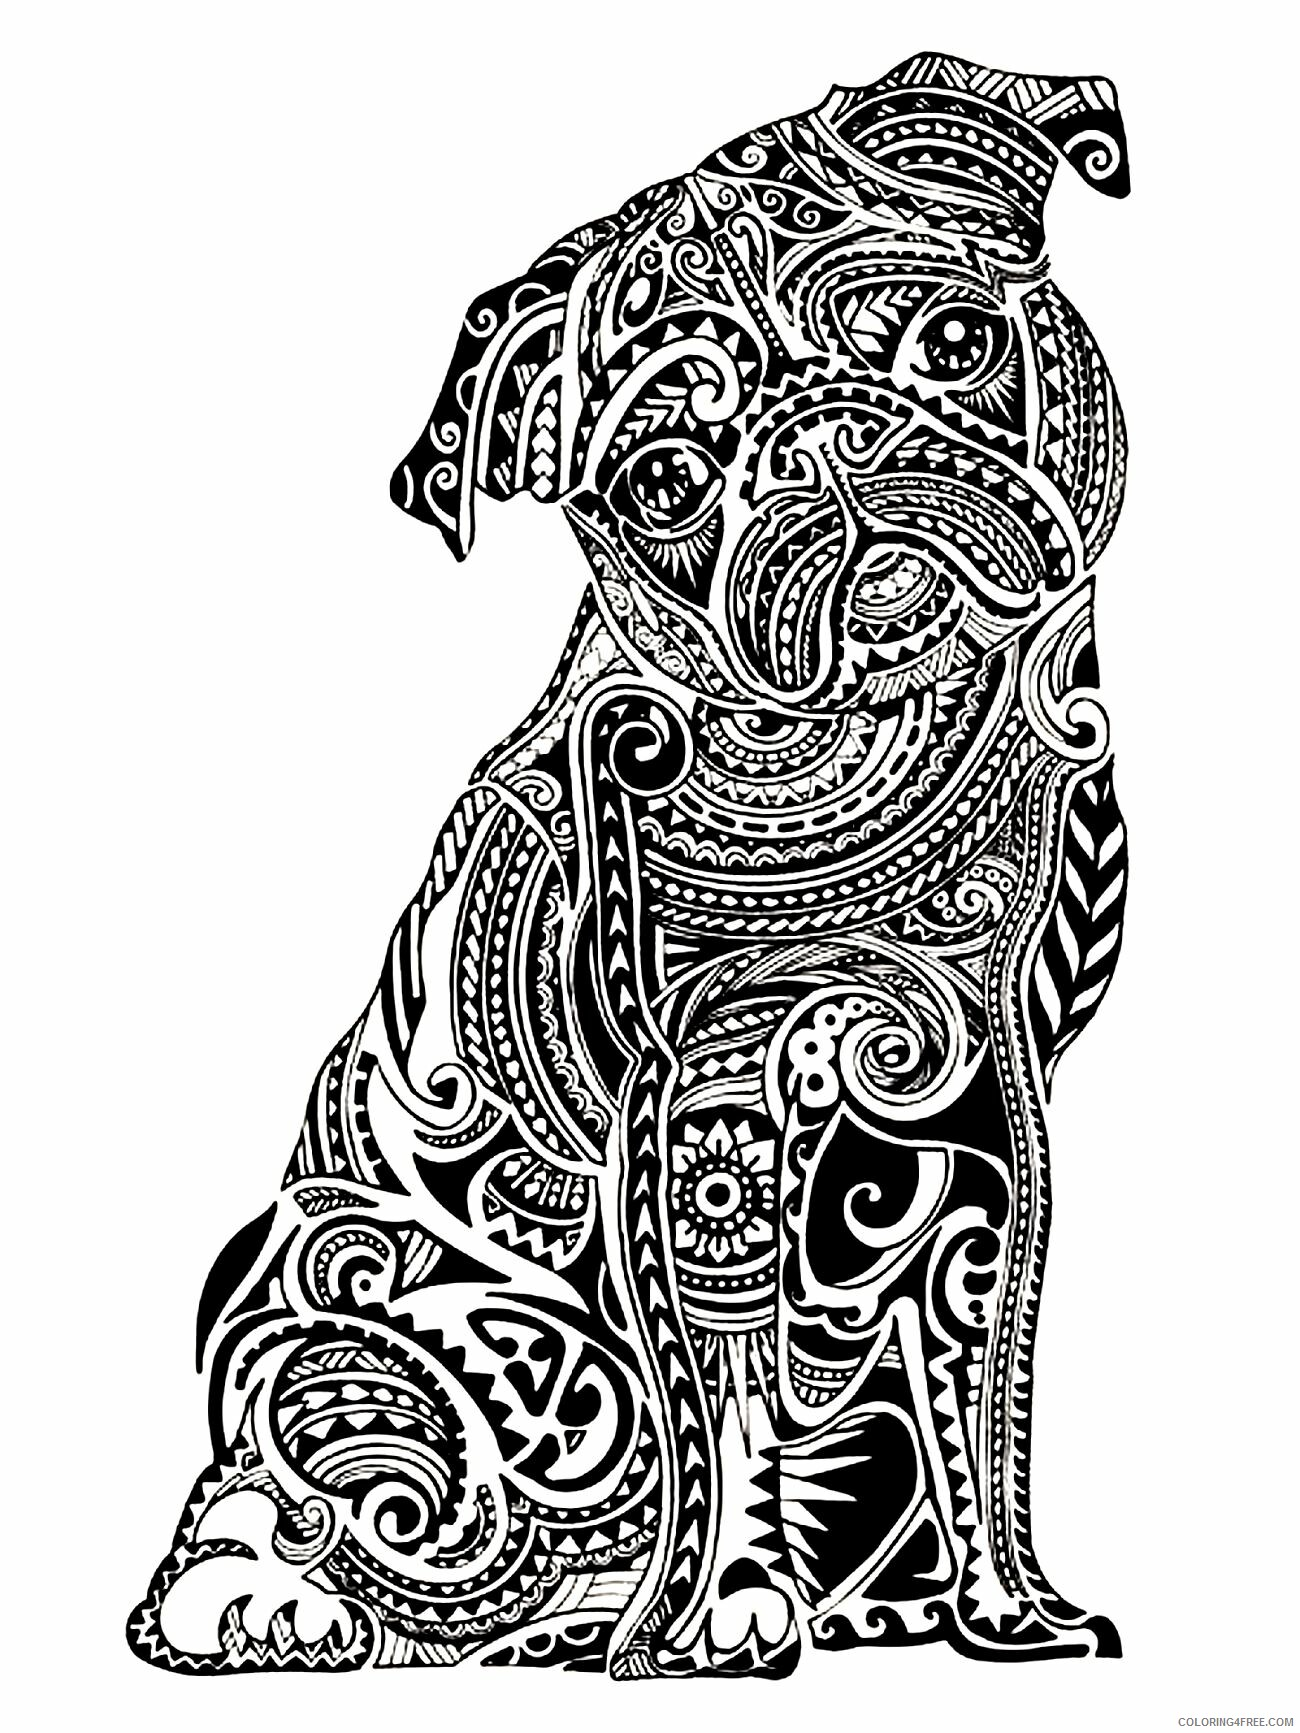 Adult Dog Coloring Pages Zendog for Adults Printable 2020 242 Coloring4free